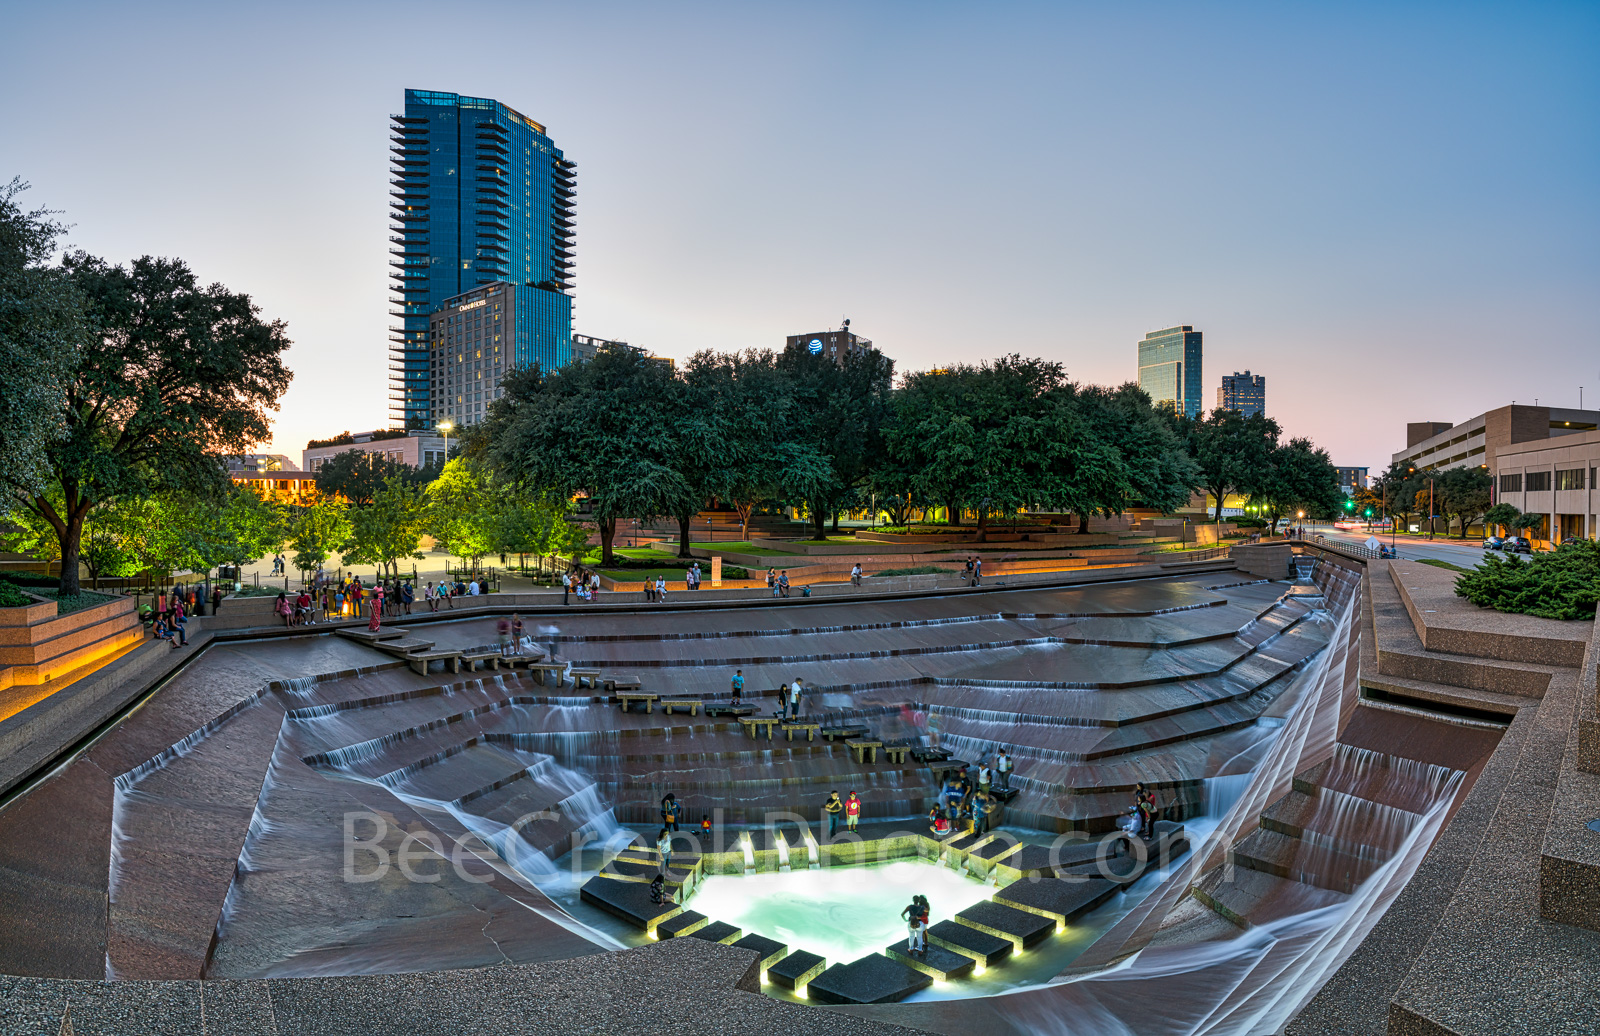 Fort Worth Water Garden at dusk, sunset, dusk, urban, cityscape, cityscapes, city, downtown, Amon Carter Foundation, architects,Philip Johnson, John Burgee, urban oasis, aerating pool, pool,people,  p, photo